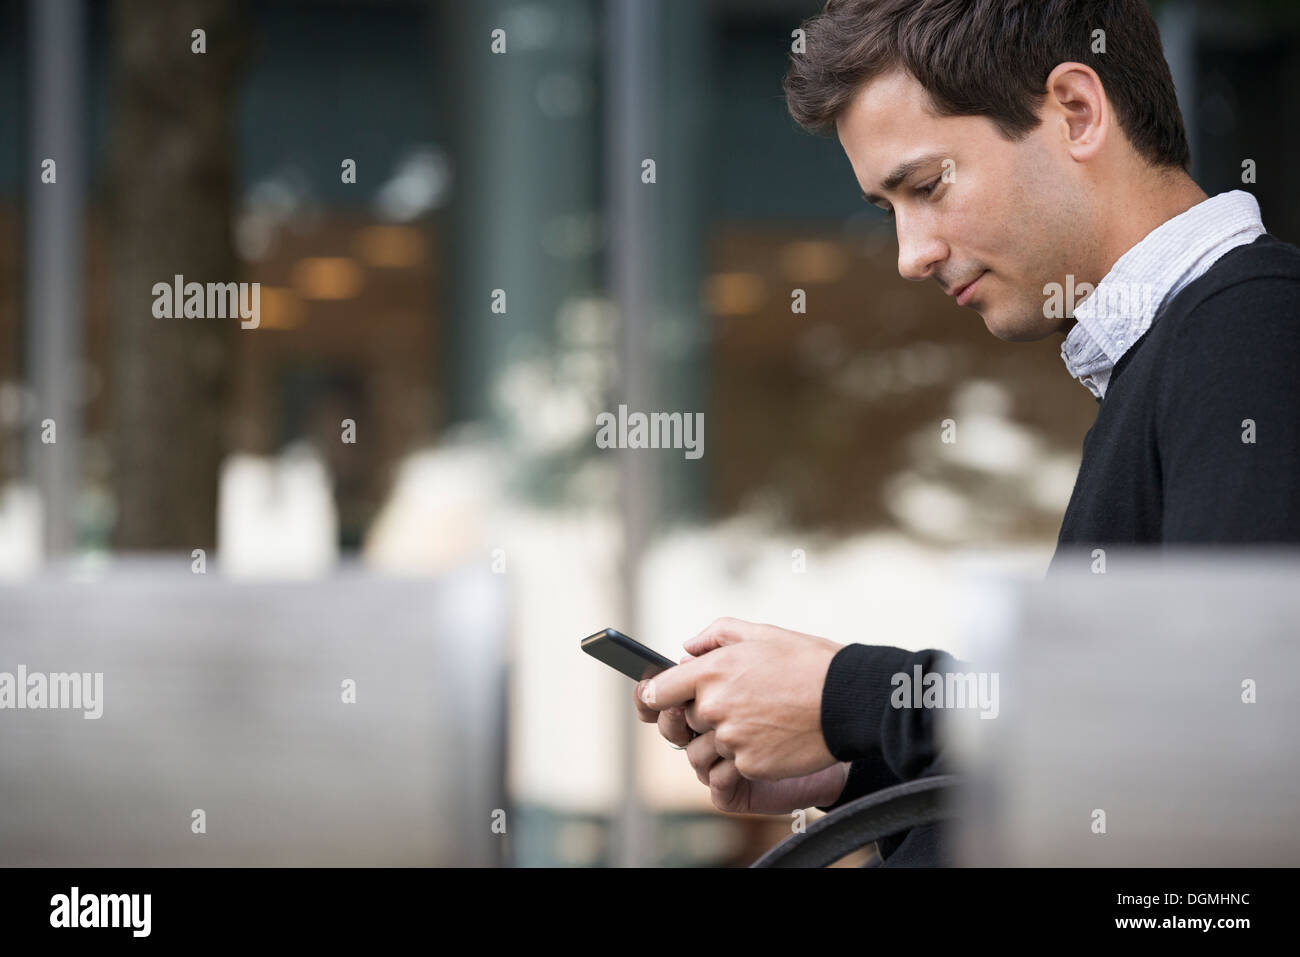 Summer in the city. A man sitting on a bench using a smart phone. - Stock Image